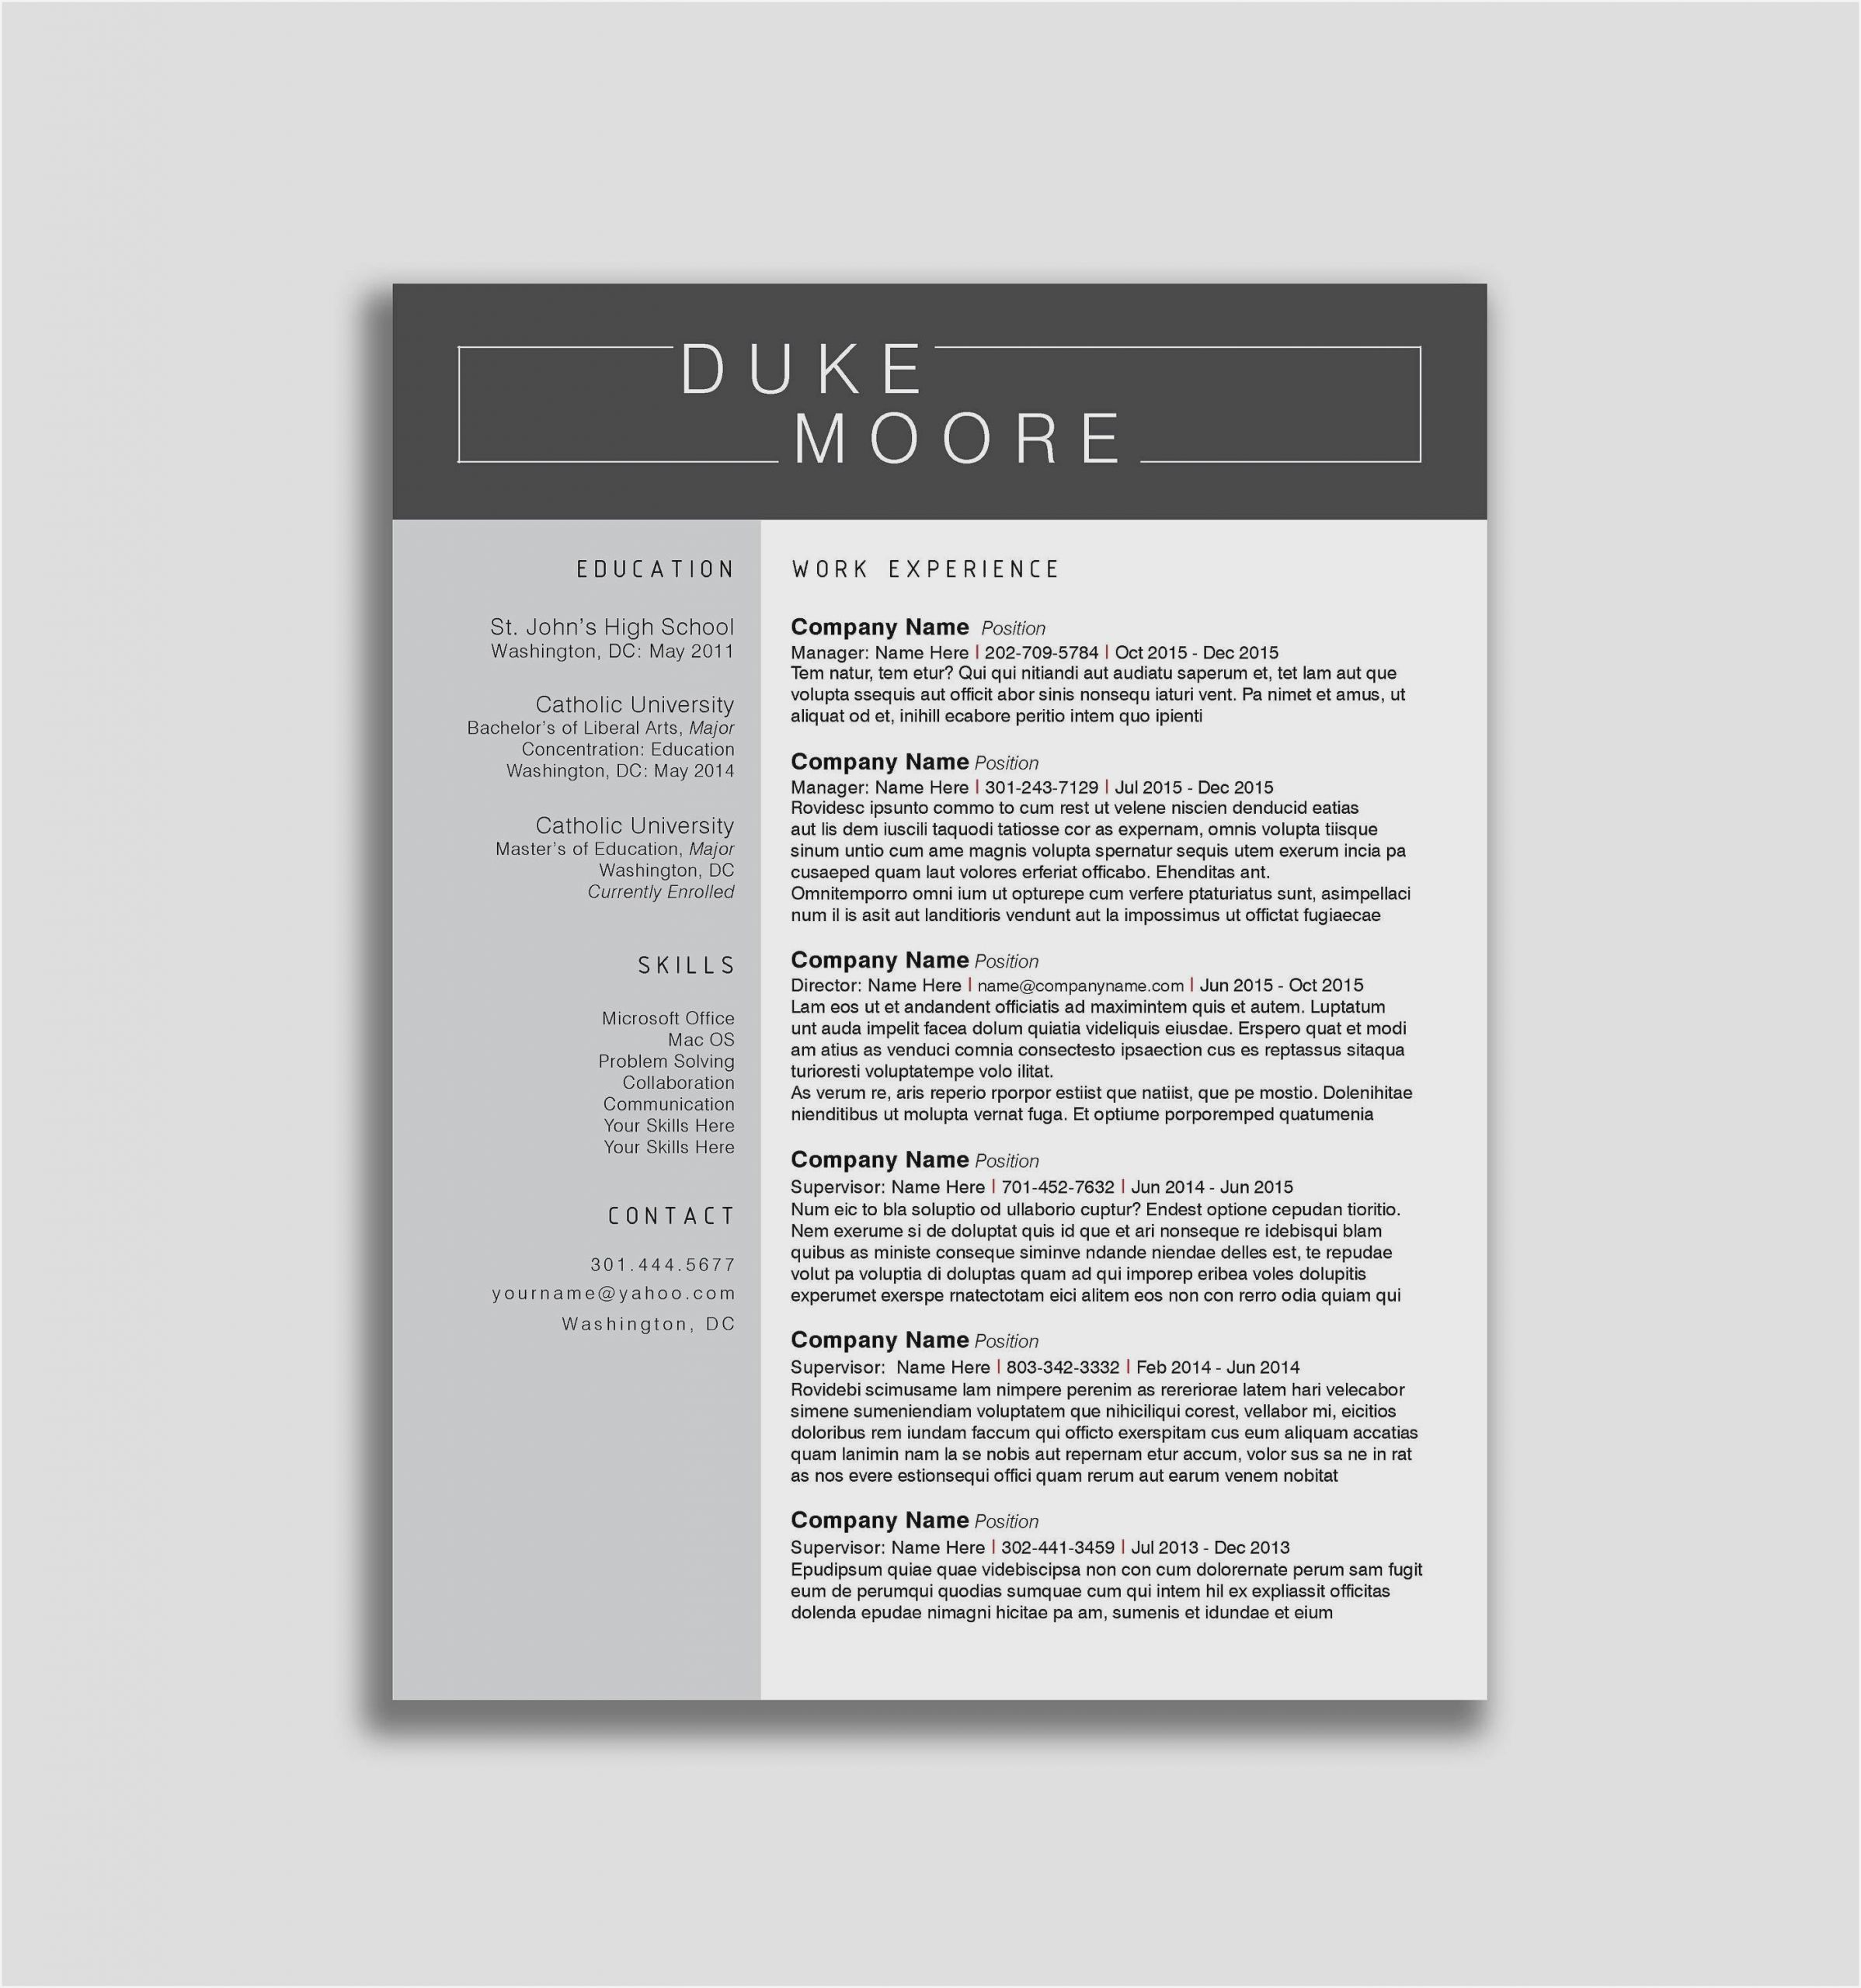 modern resume template free sample templates for word scaled accent blank copy of poem Resume Free Modern Resume Templates For Word